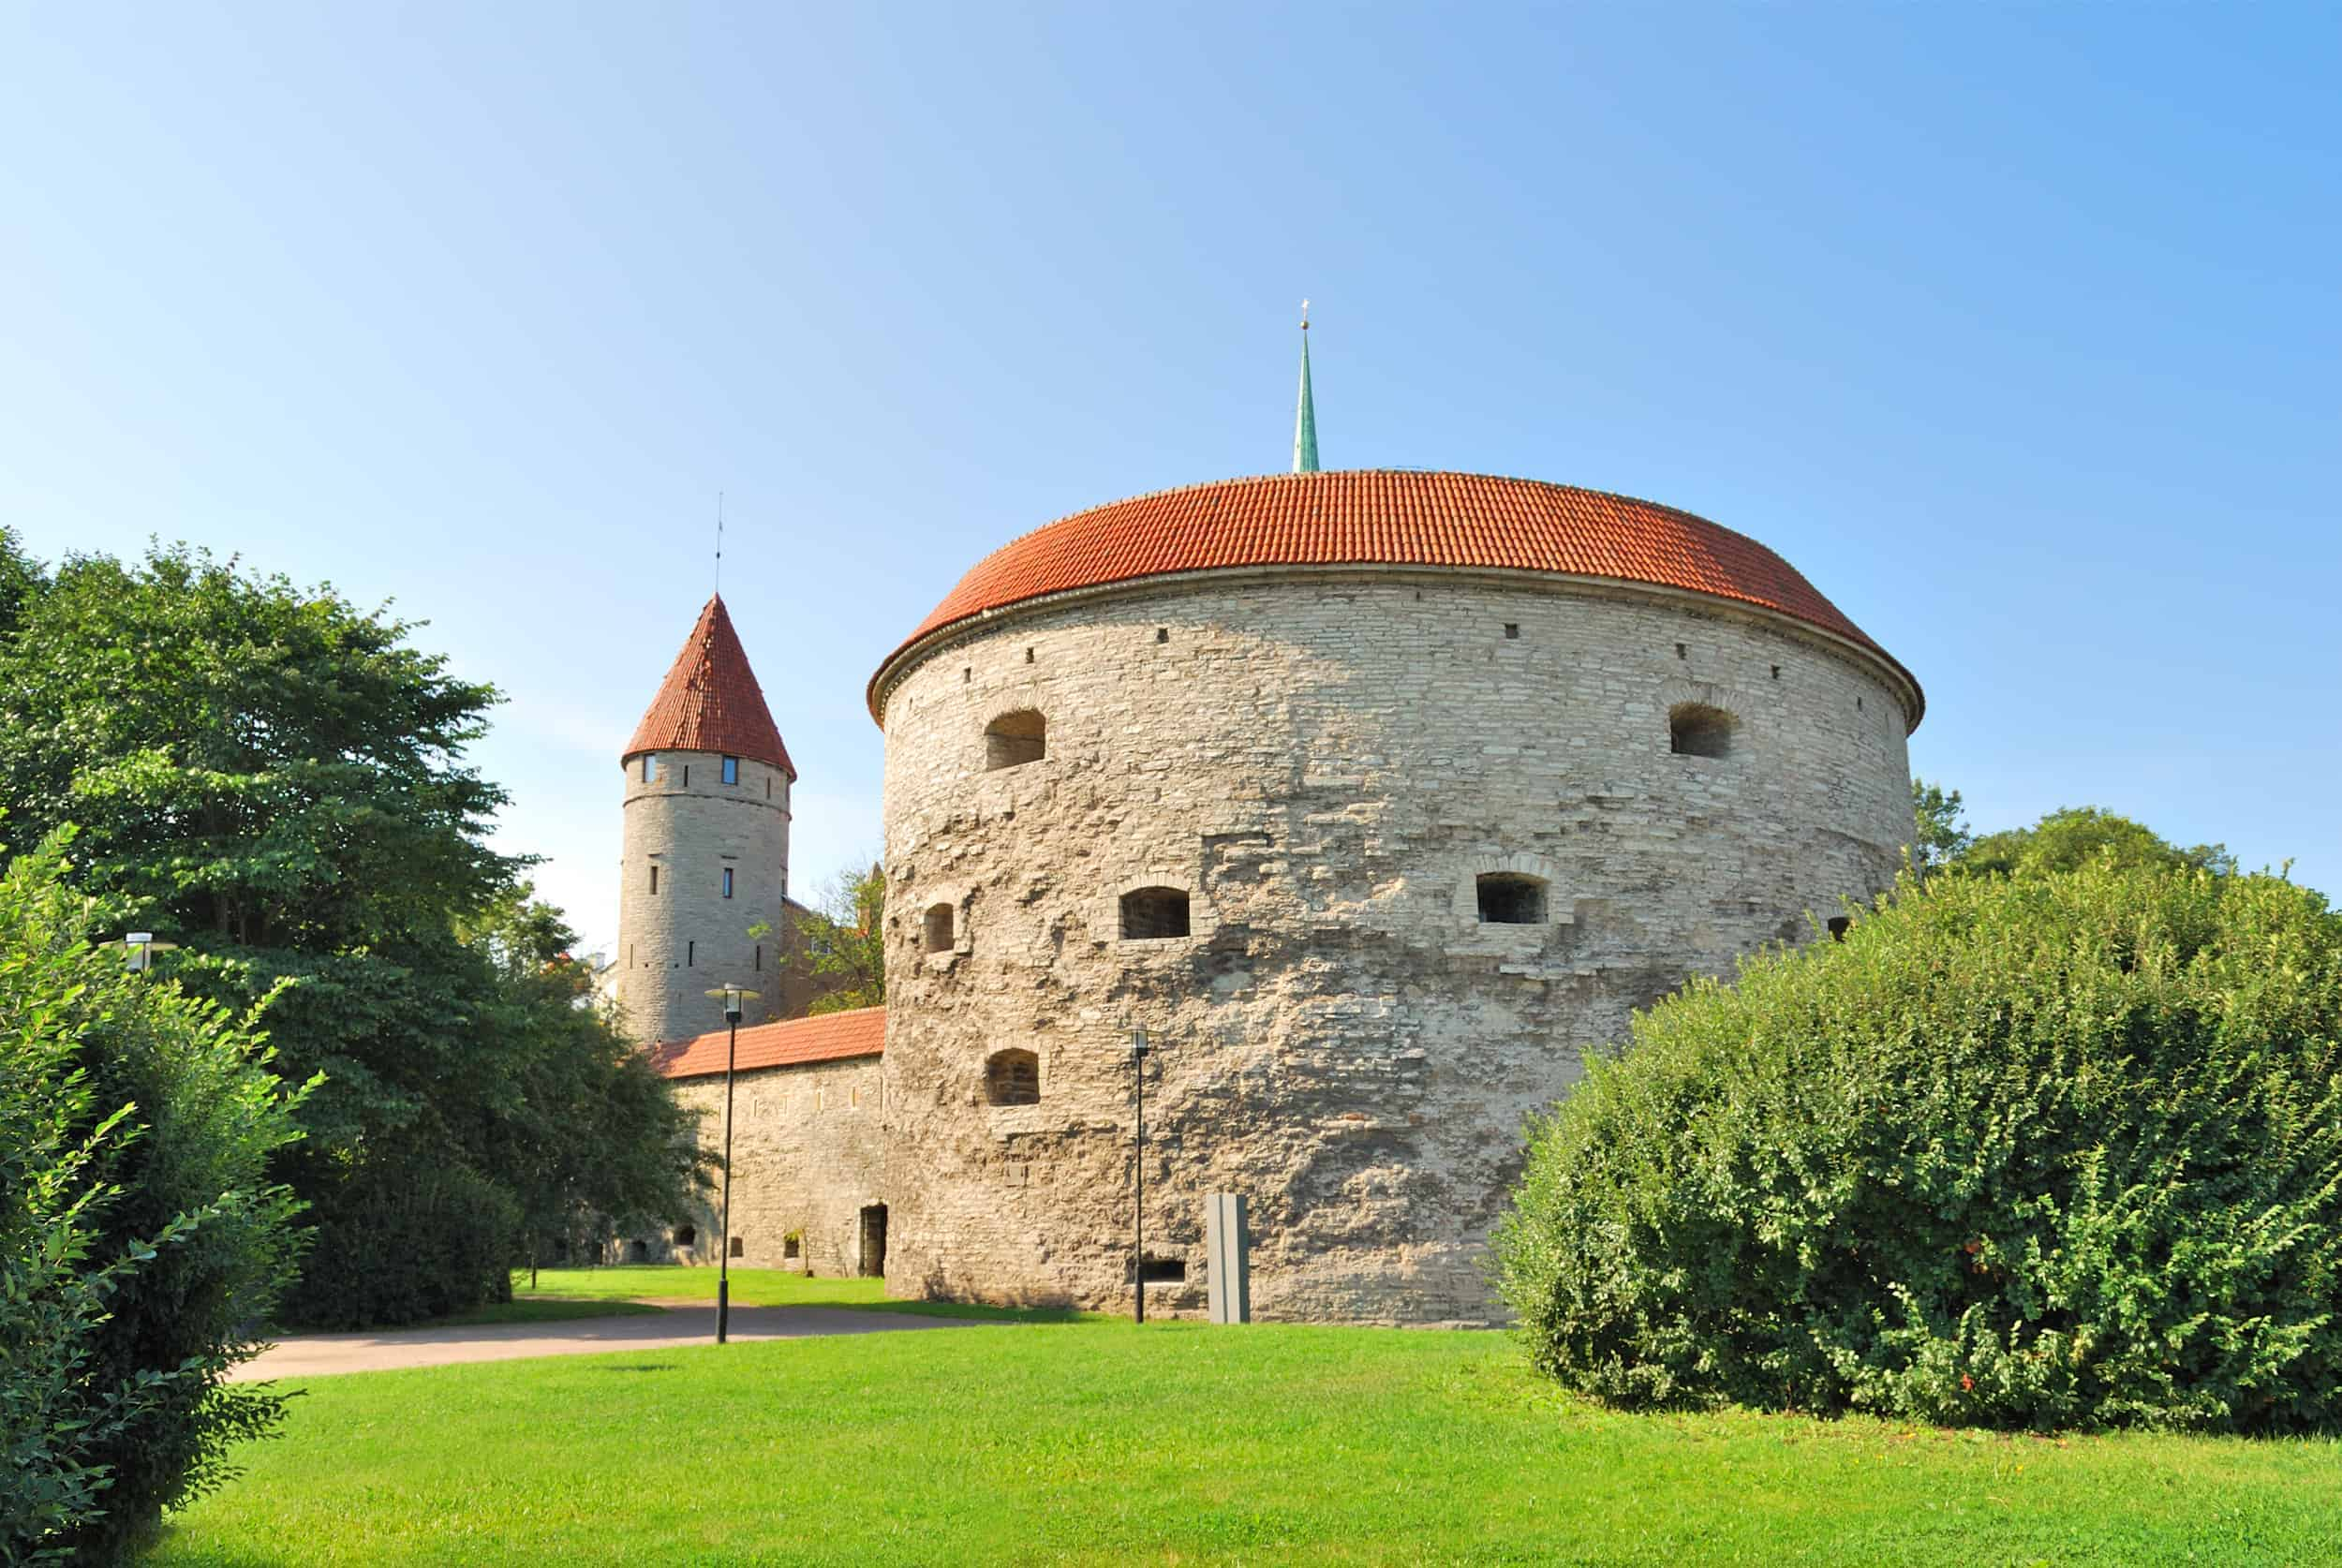 Fat Margaret's Tower, Tallinn